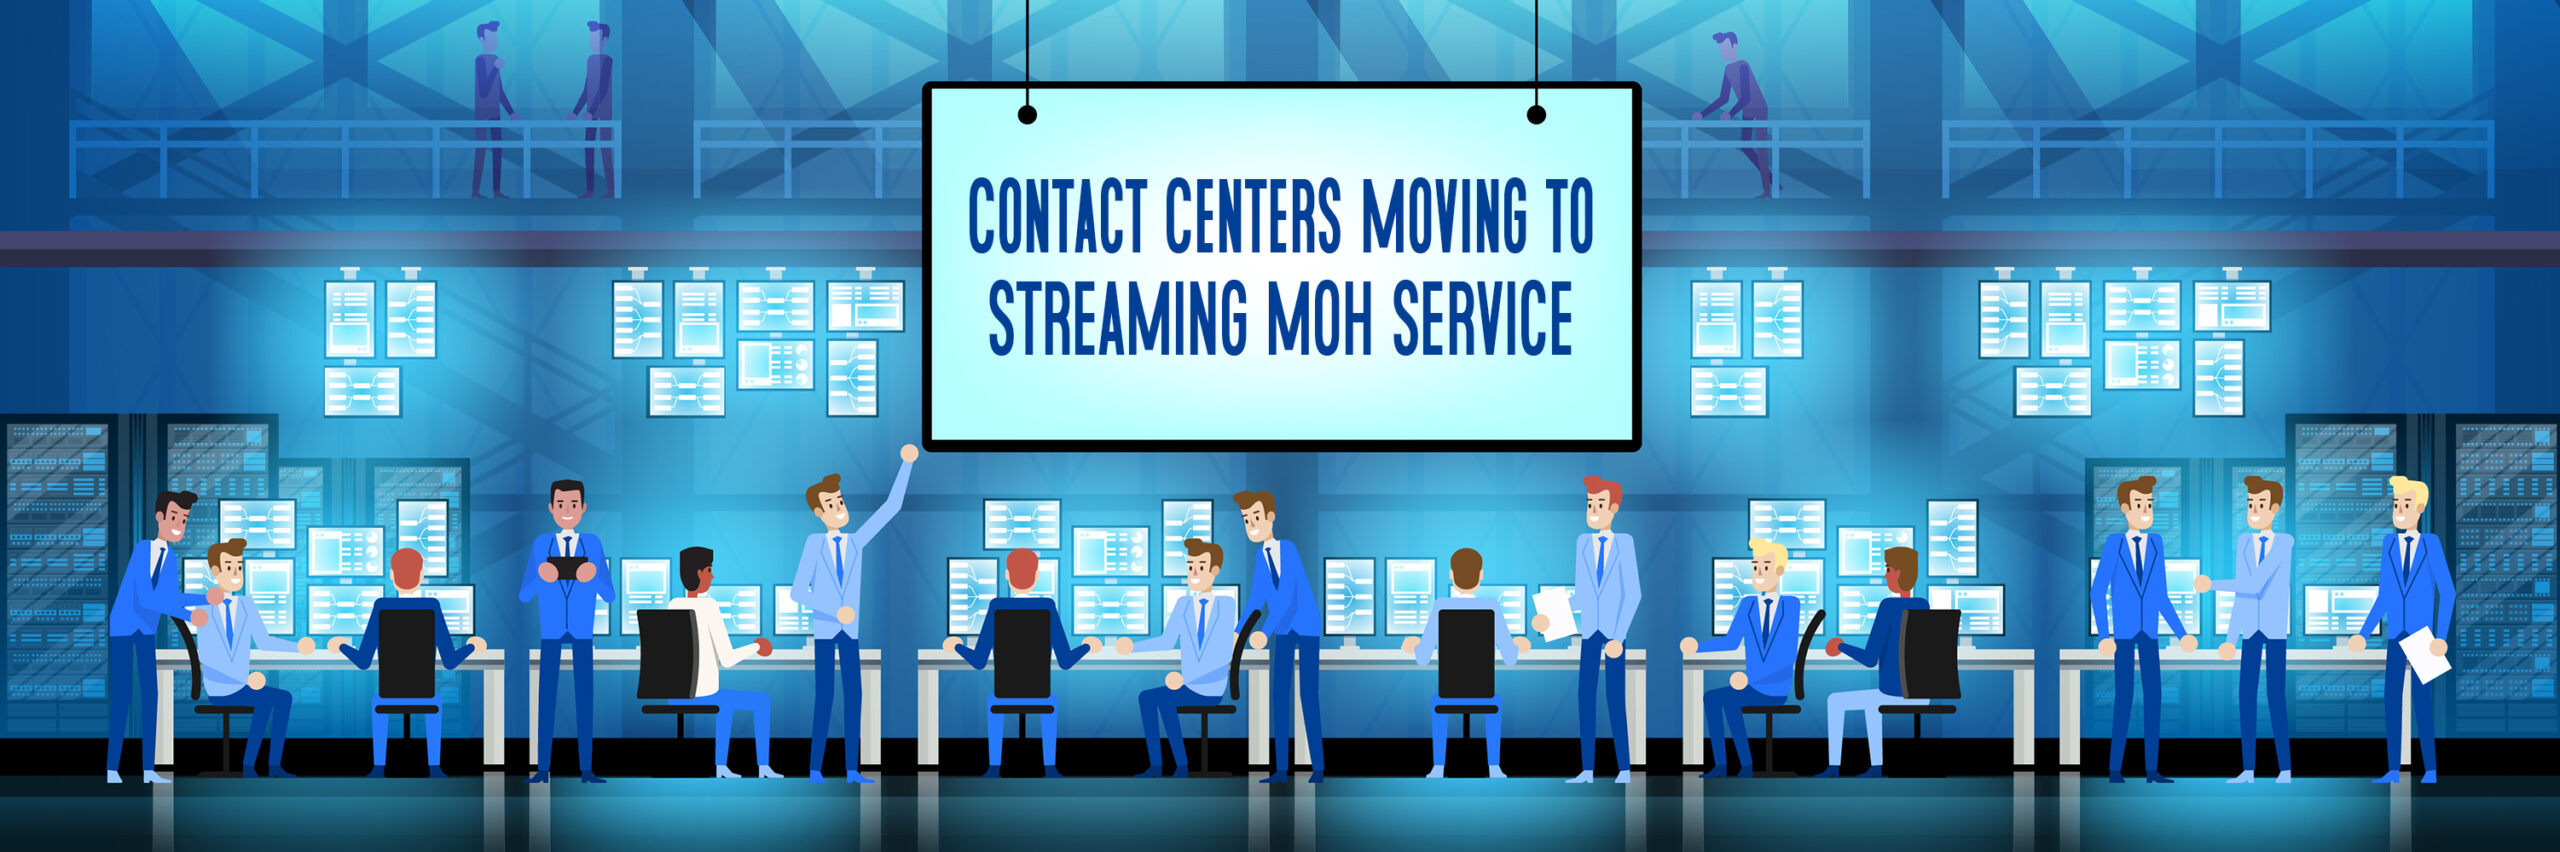 contact centers moving to streaming music service